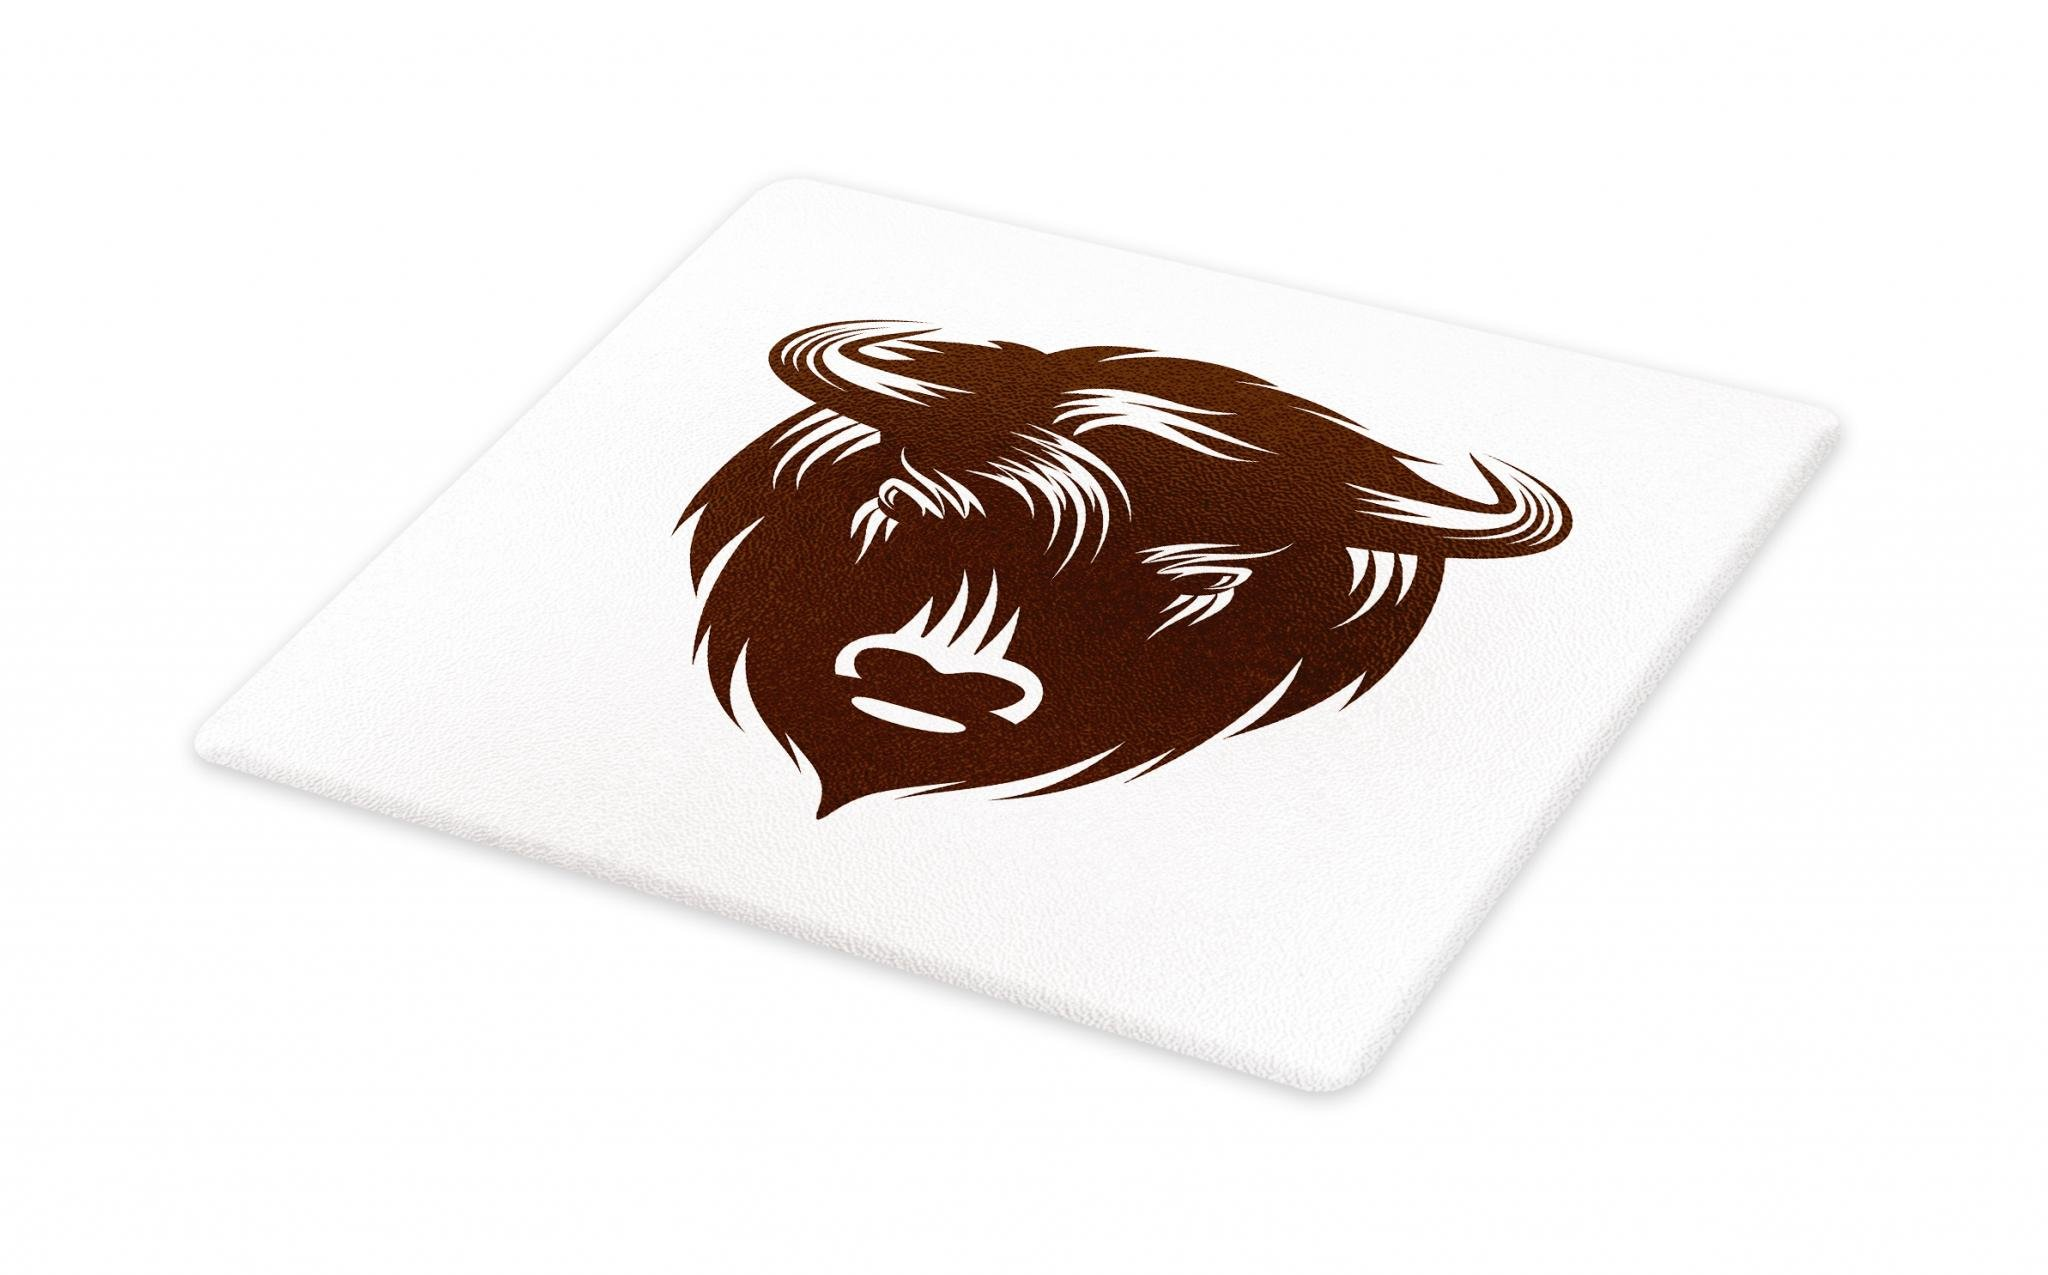 Lunarable Bison Cutting Board, Earth Tones Horned Buffalo Head Wilderness Forest Animal Jungle Illustration, Decorative Tempered Glass Cutting and Serving Board, Large Size, Chocolate White